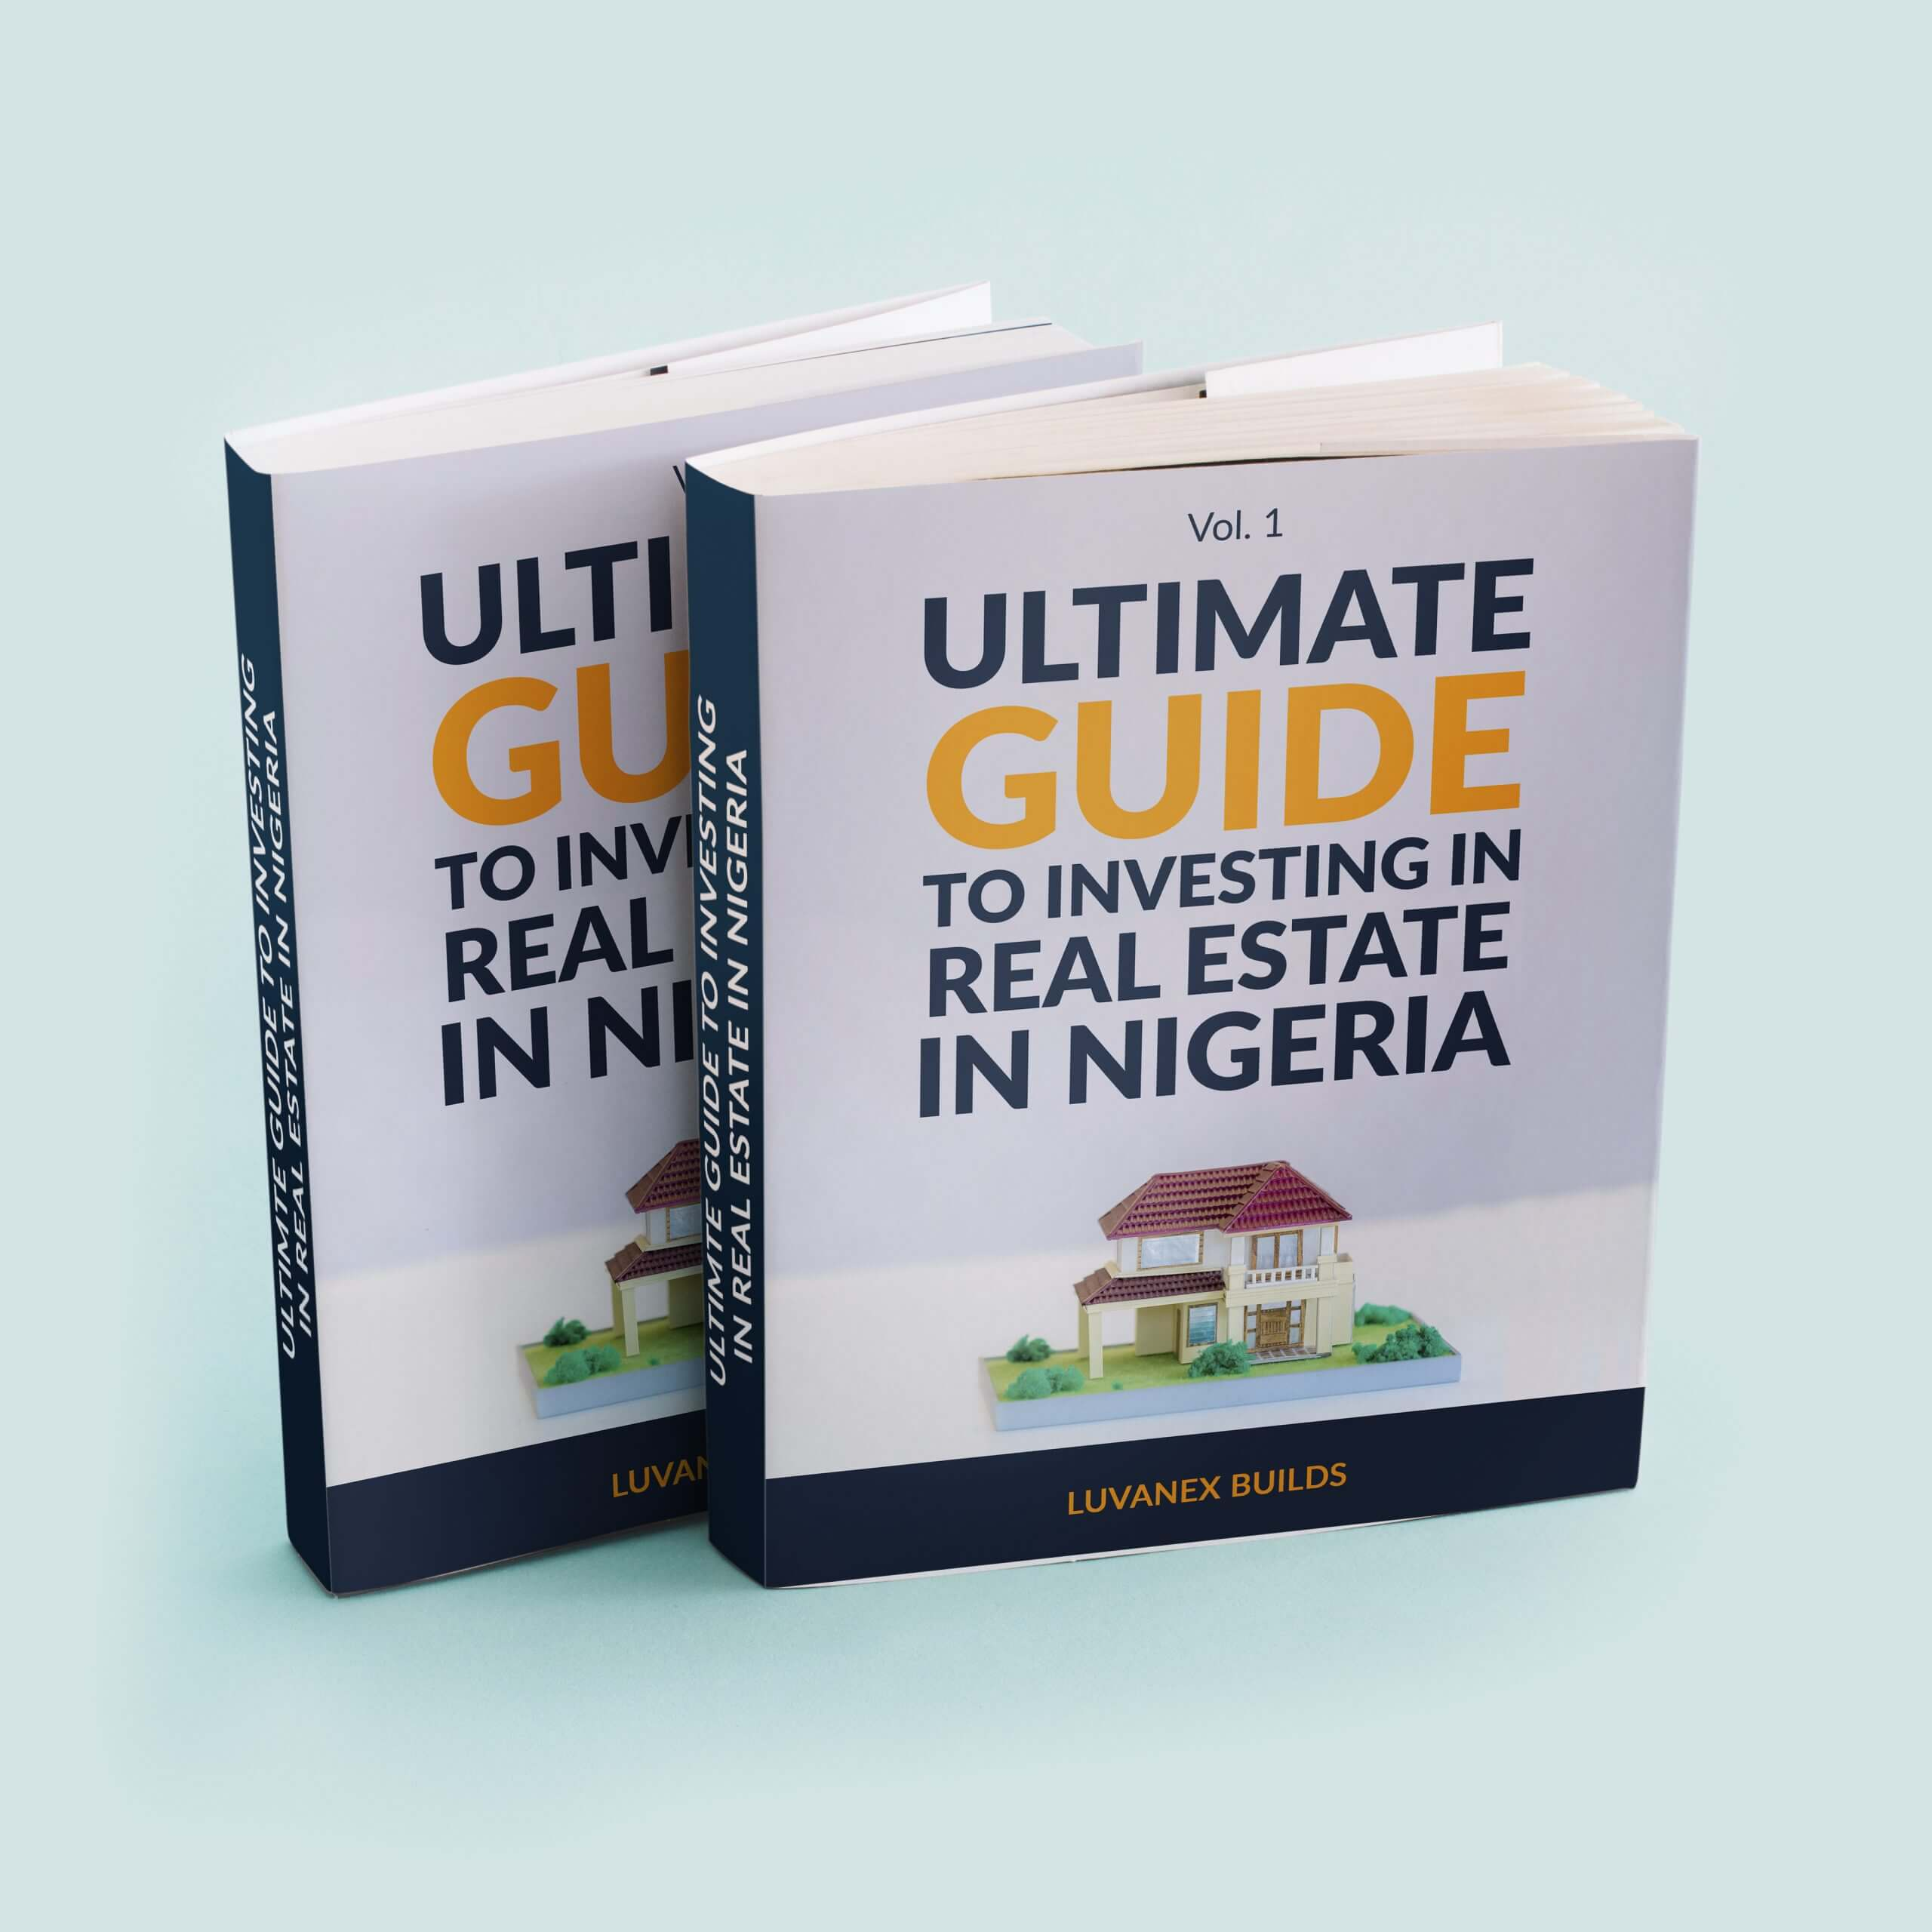 Ultimate guide to investing in real estate in nigeria